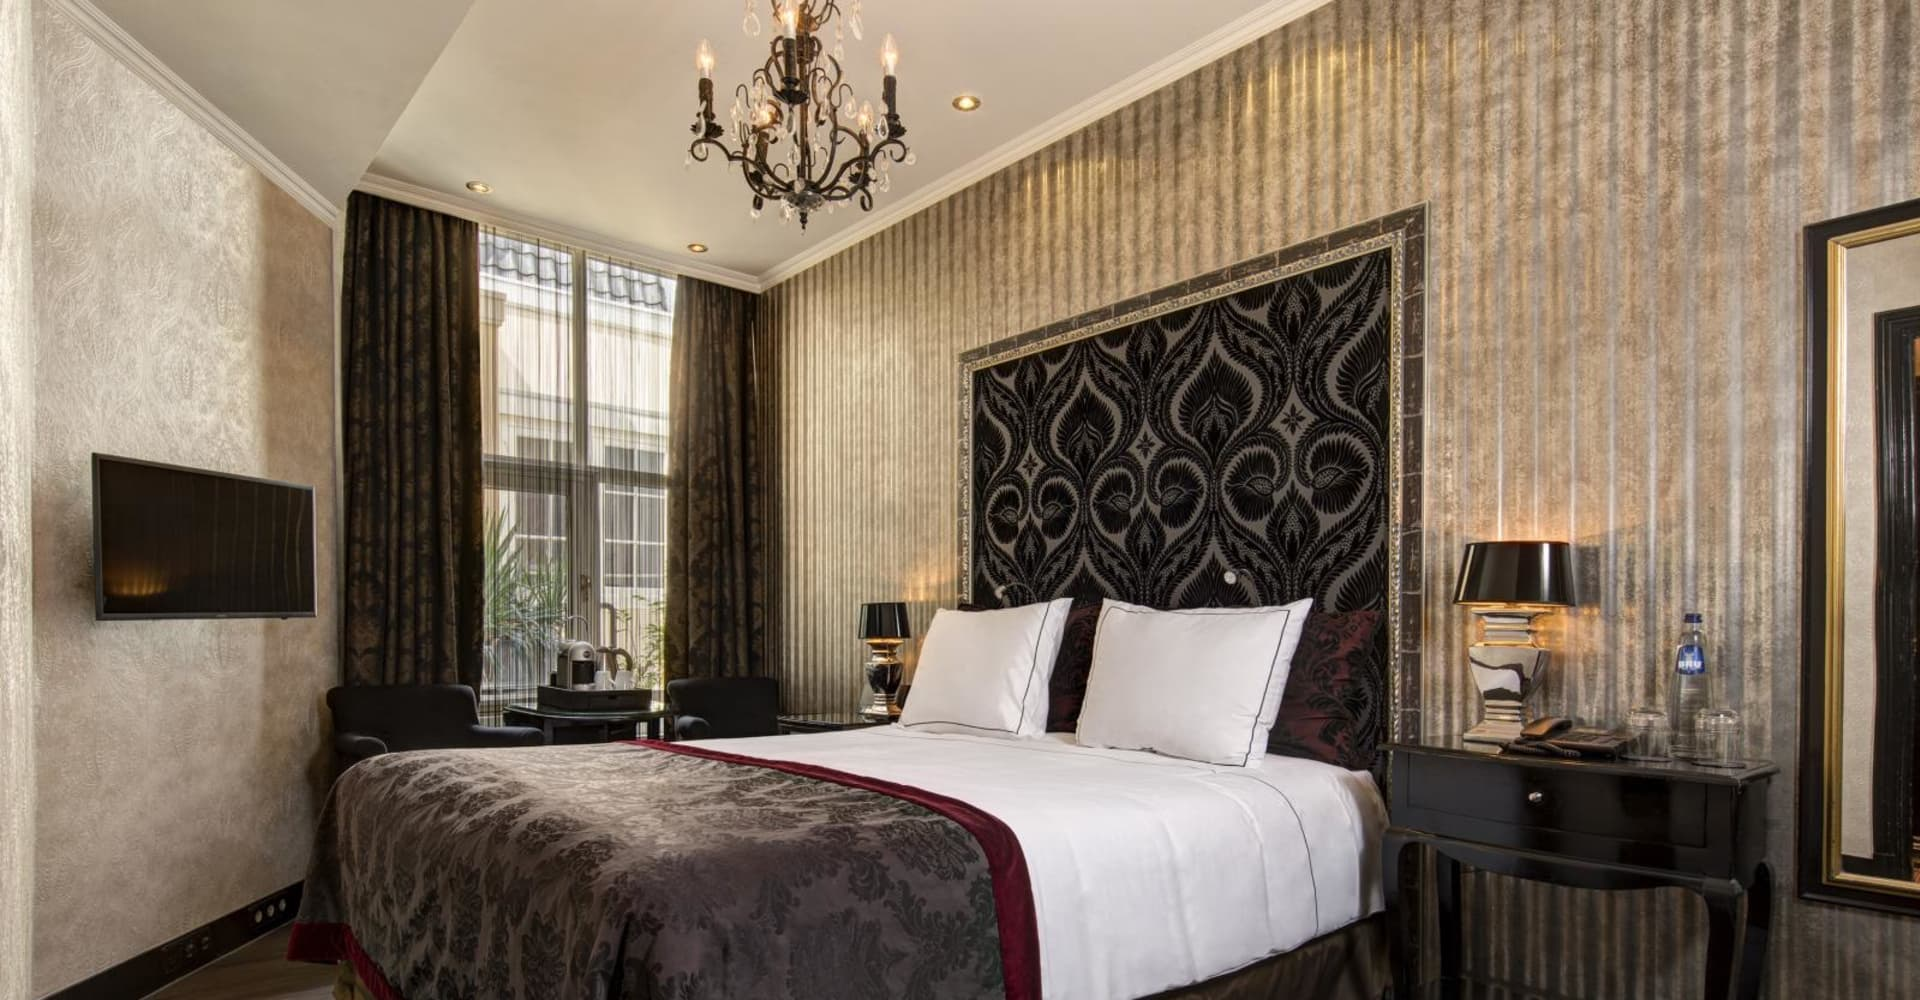 Kamers & Suites - The Toren Amsterdam - By the Pavilions